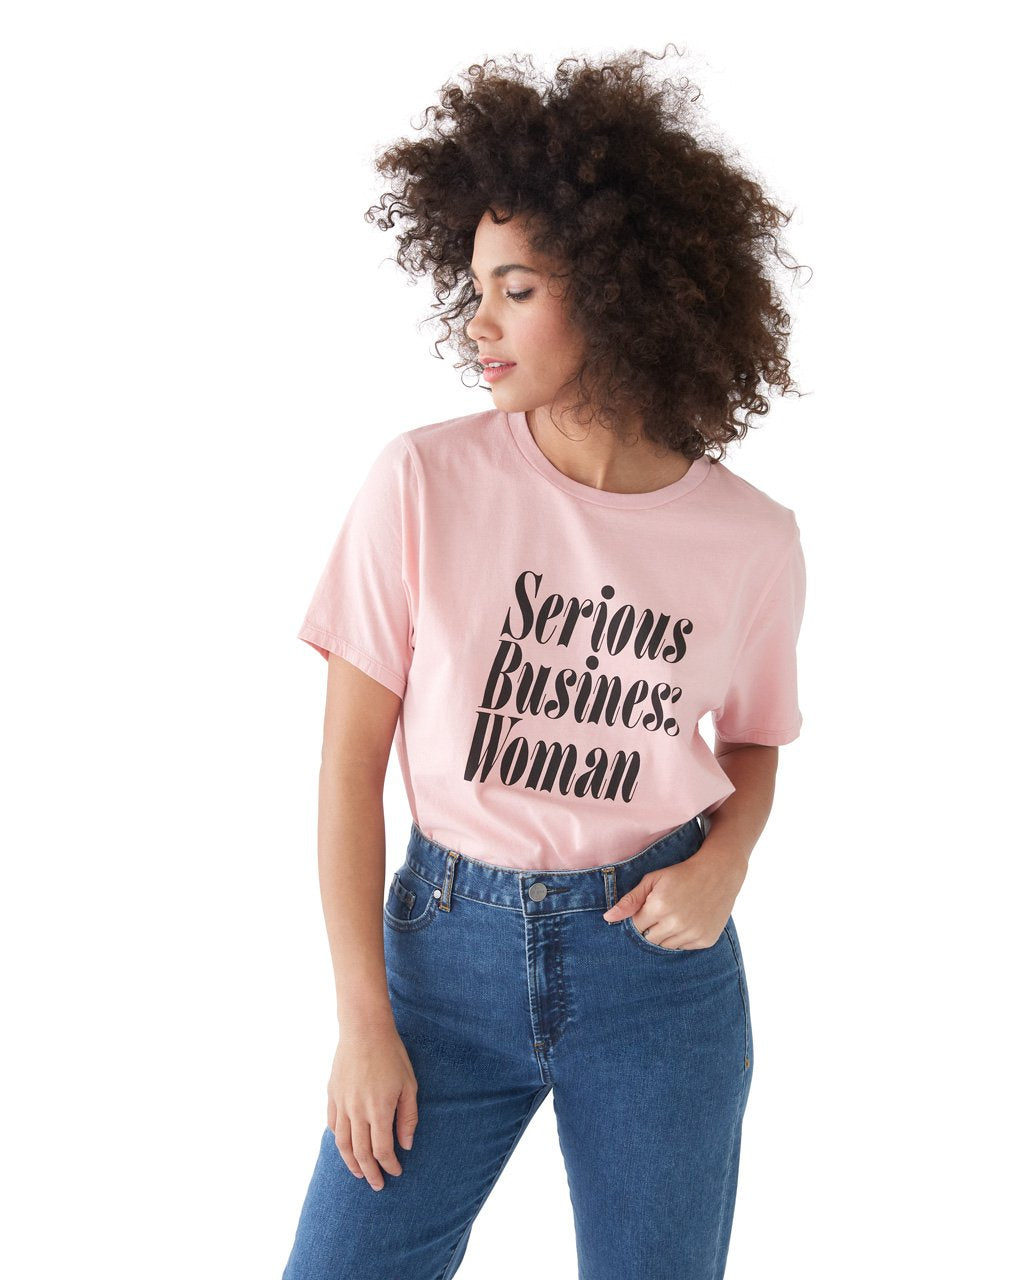 Serious Business Woman Tee